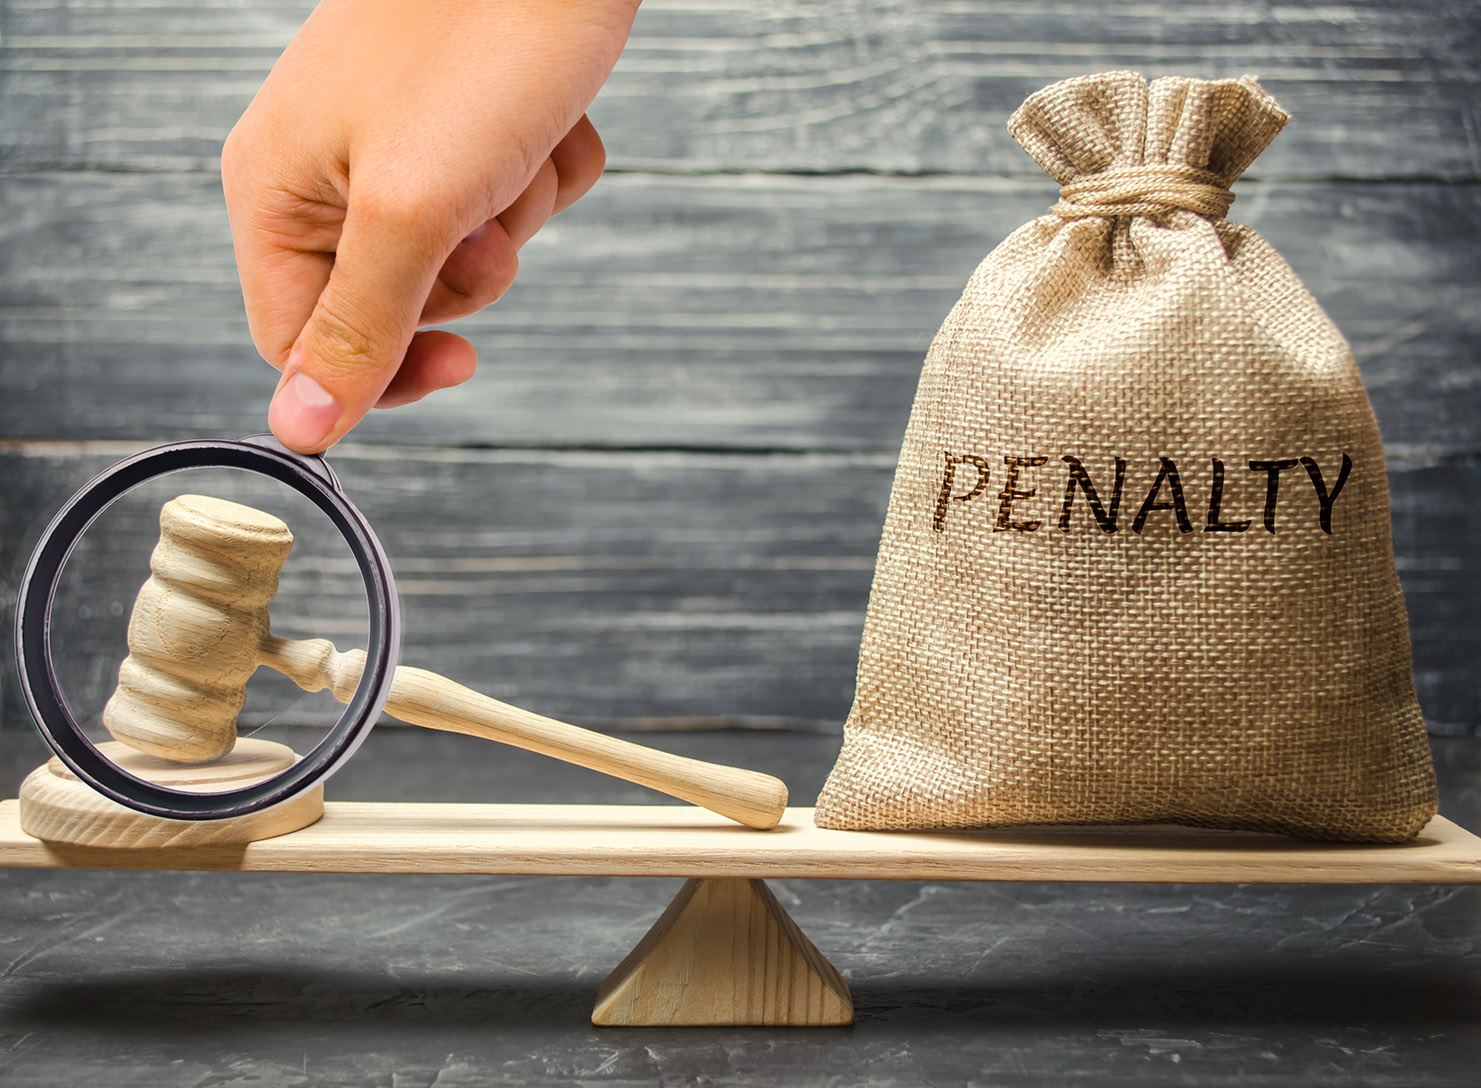 Bag,With,The,Word,Penalty,And,Gavel,On,The,Scales